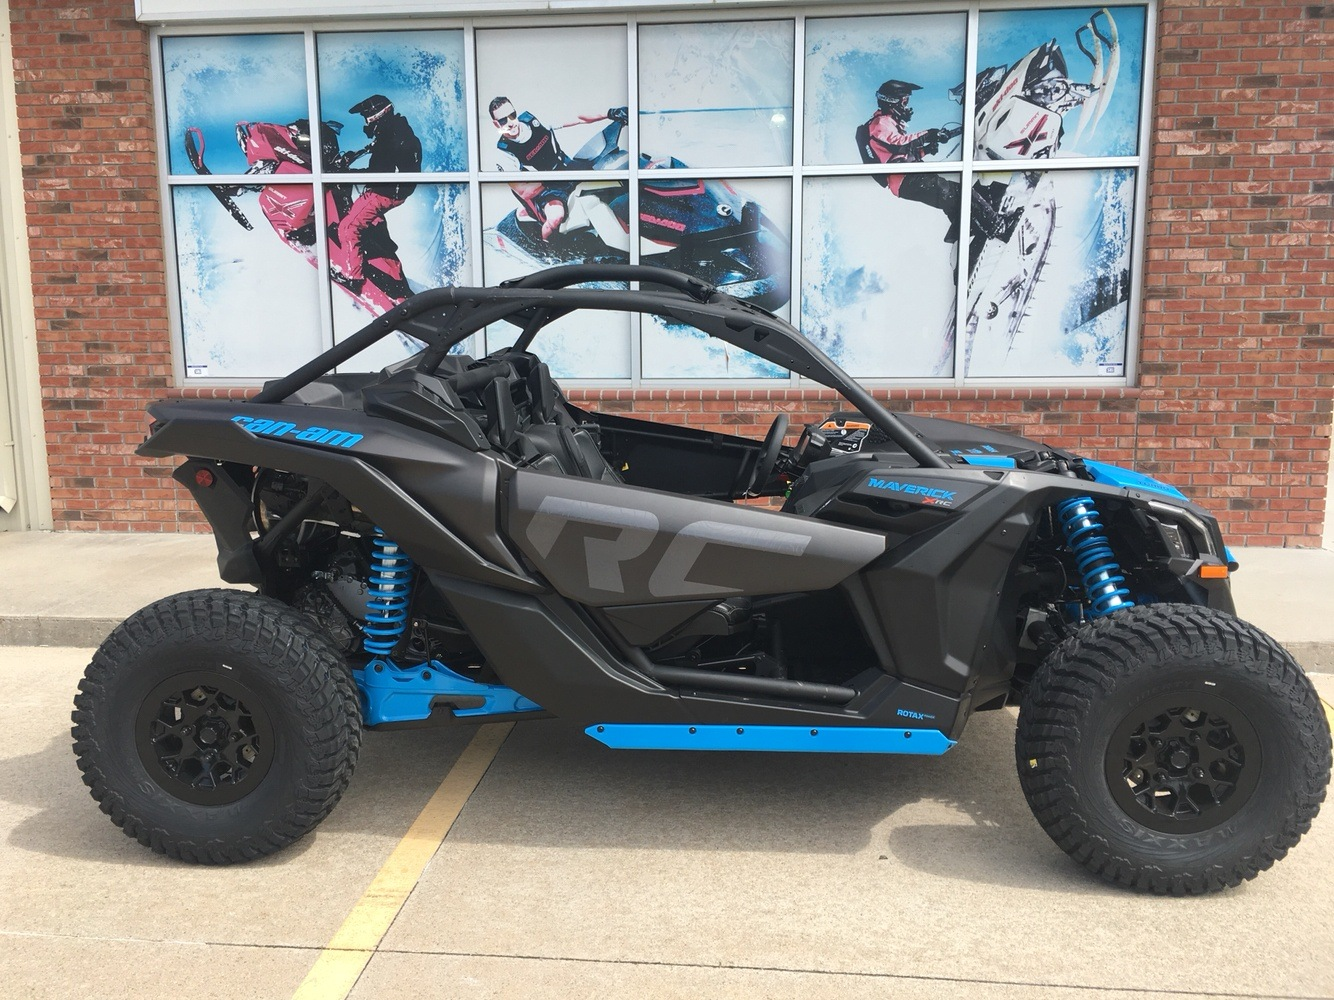 2019 Can-Am Maverick X3 X rc Turbo in Omaha, Nebraska - Photo 1